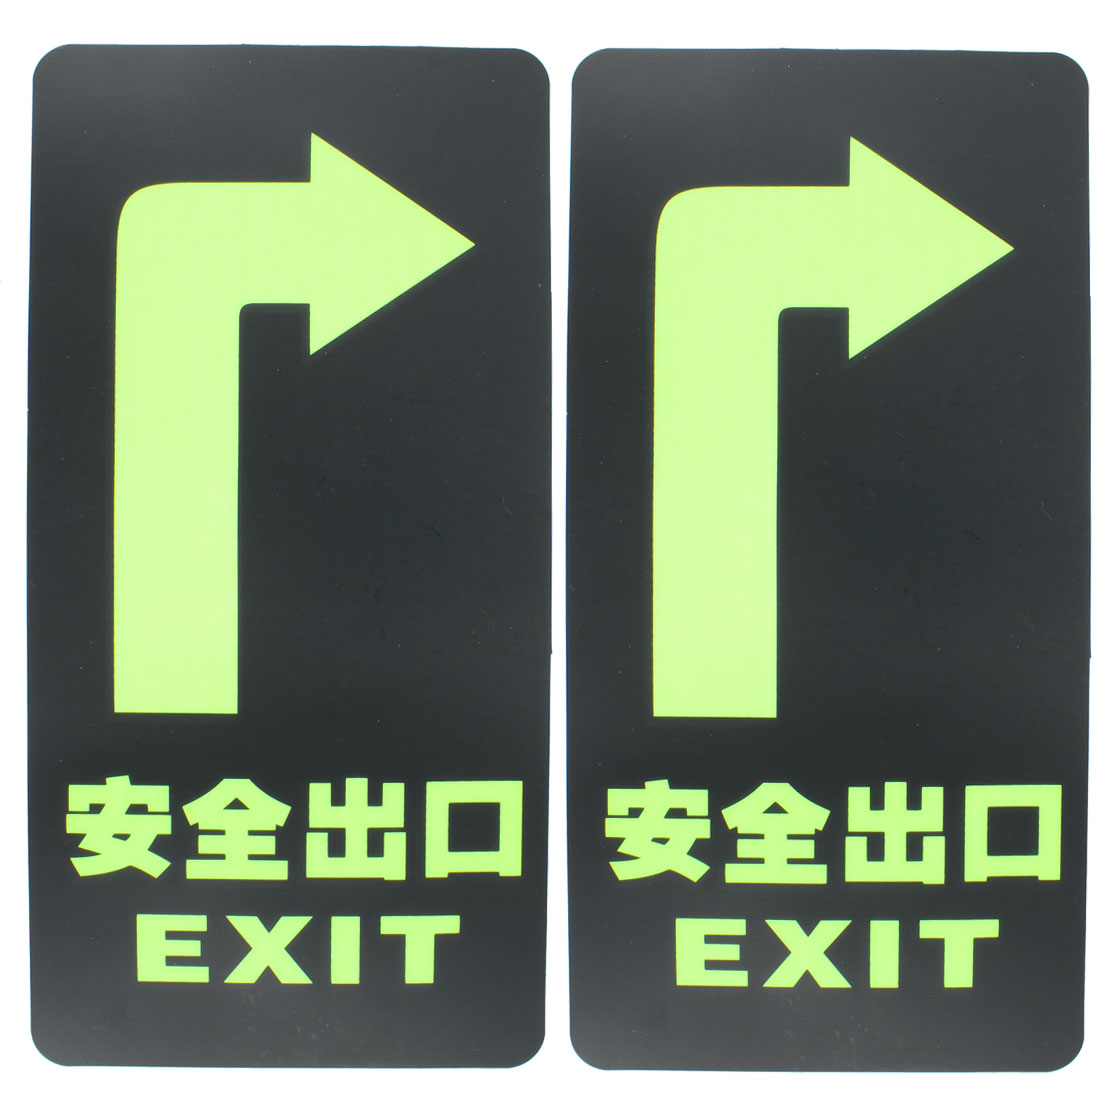 Emergency Exit Notice Caution Warning Safety Sign Stickers Decals 2pcs